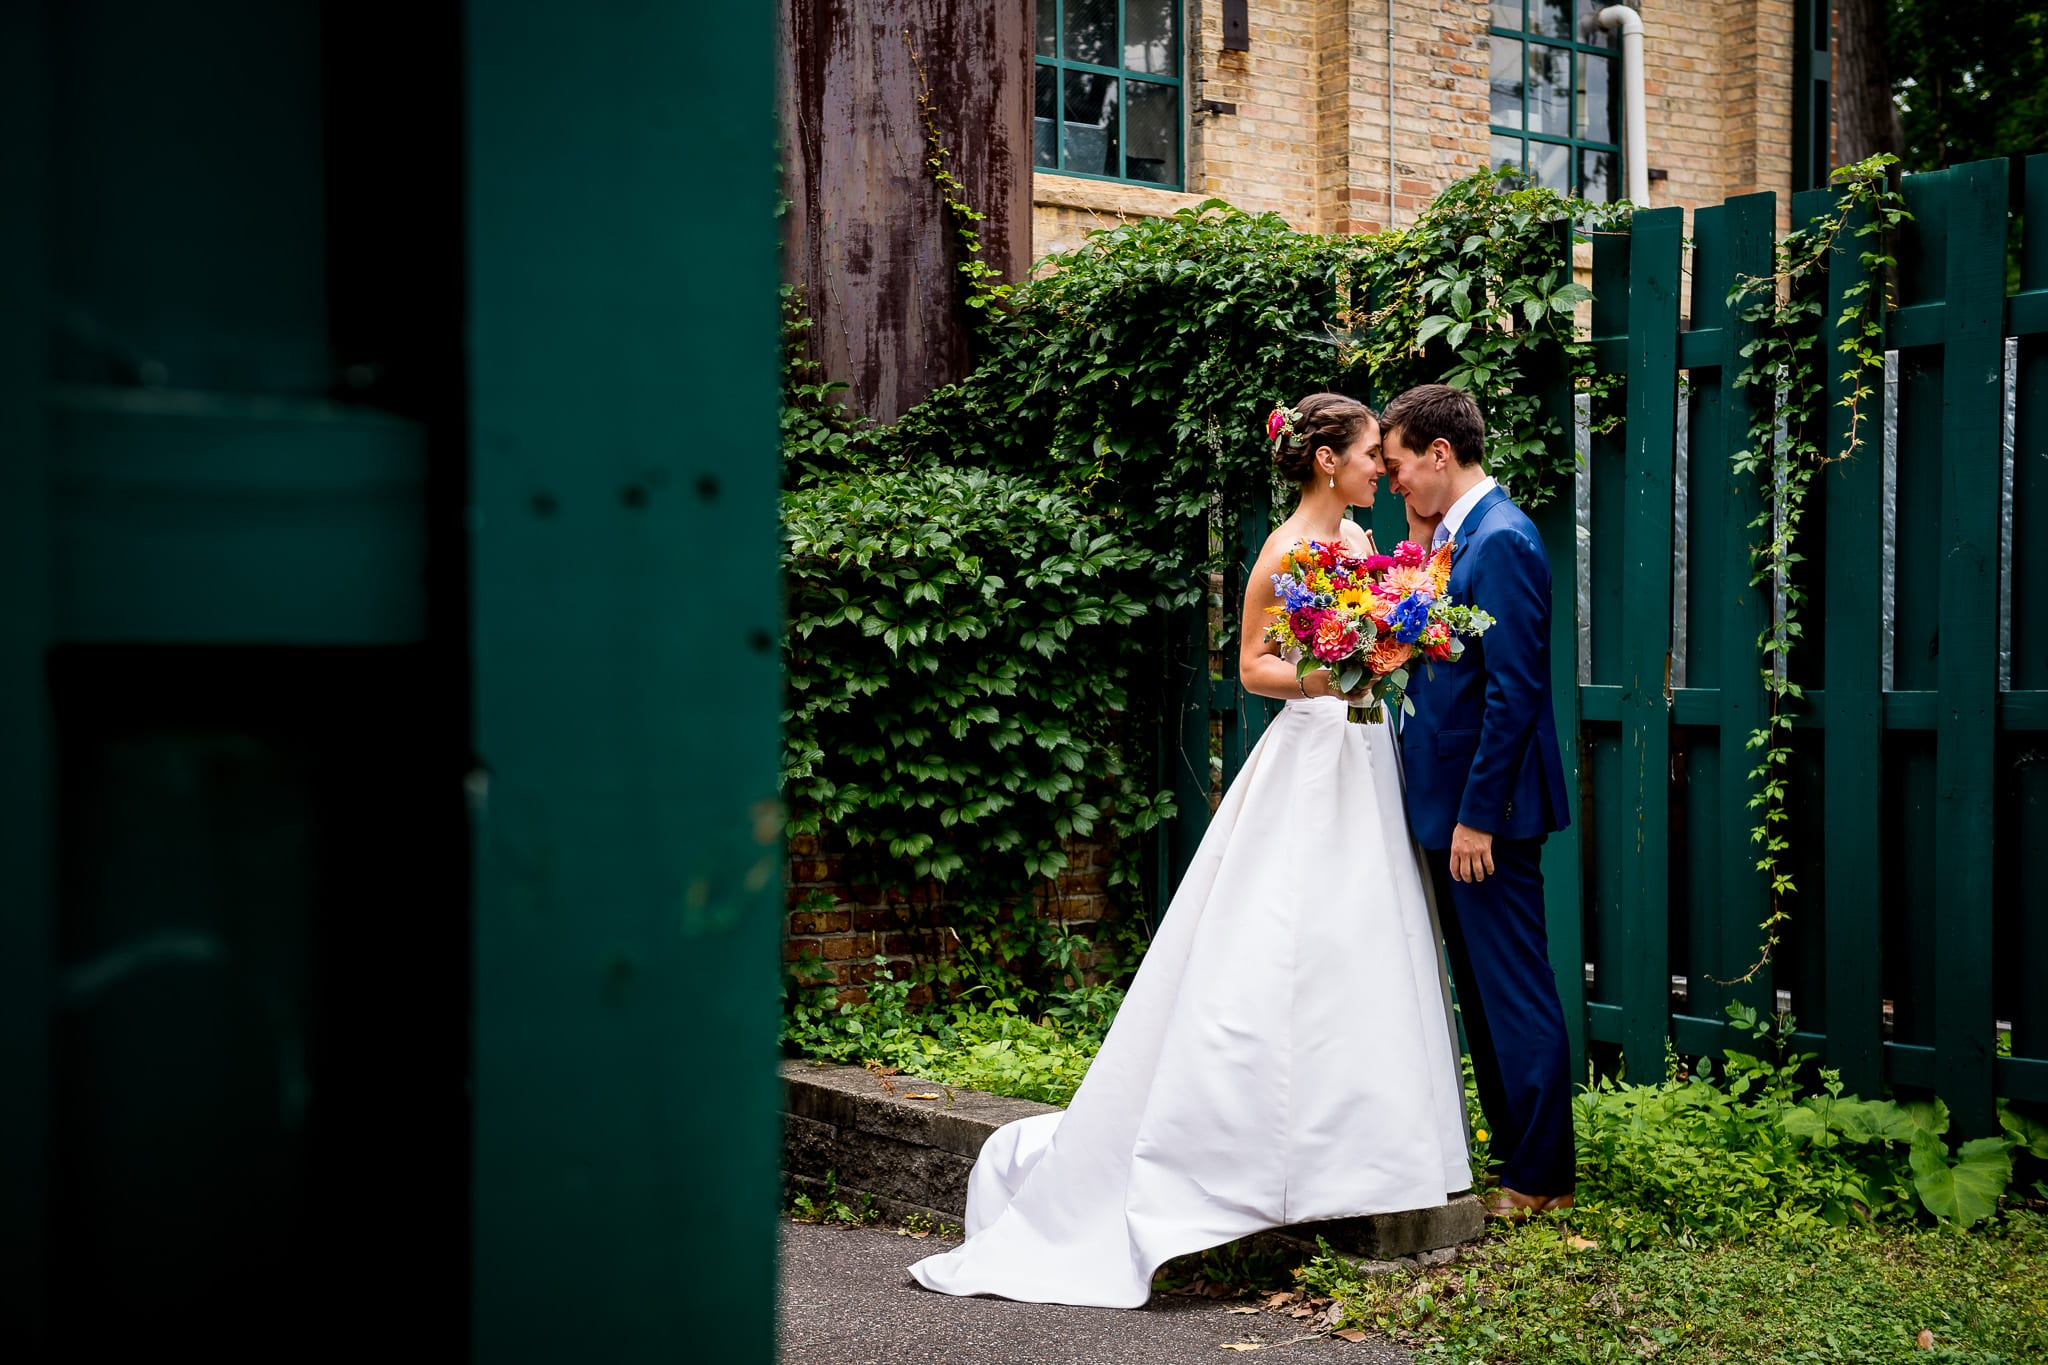 Bride and groom near the ivy and green fences in the back of the Nicollet Island Pavilion on their wedding day